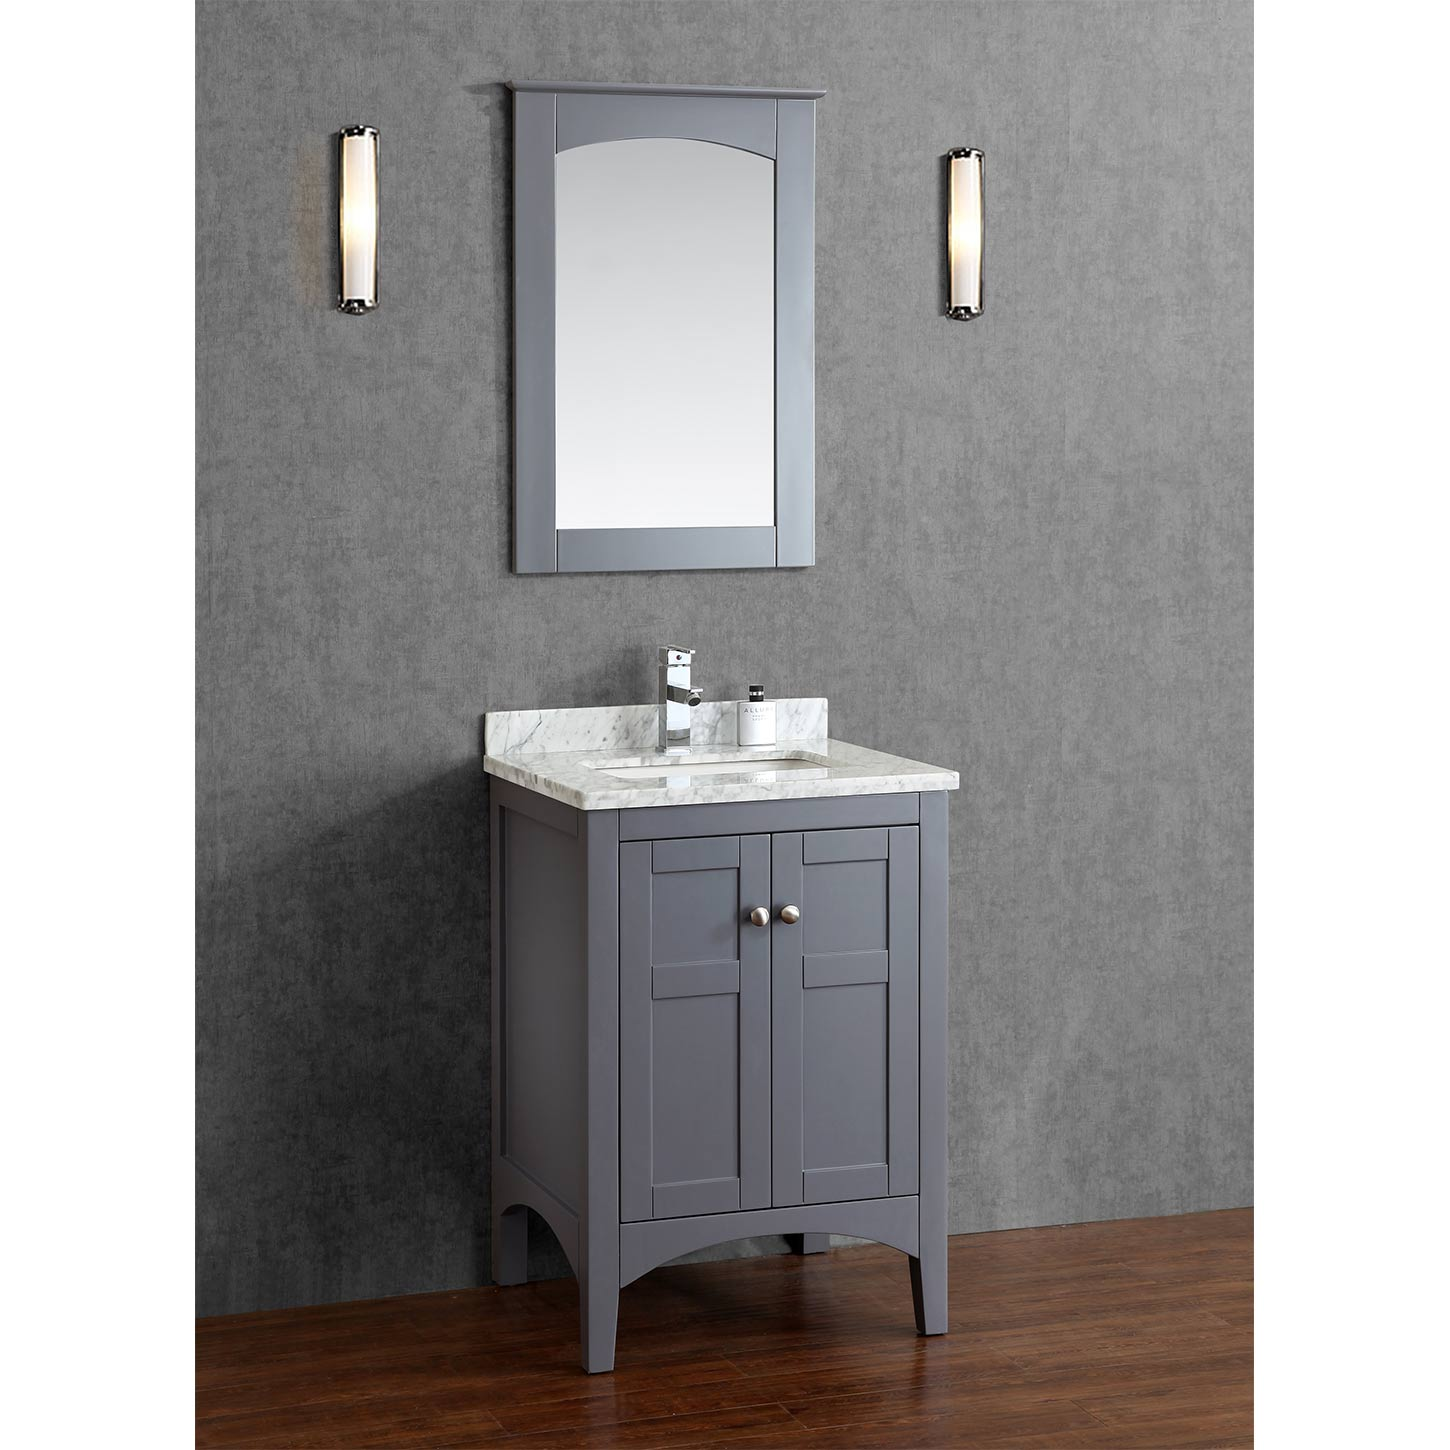 Buy martin 24 inch solid wood single bathroom vanity in for Bathroom 24 inch vanity